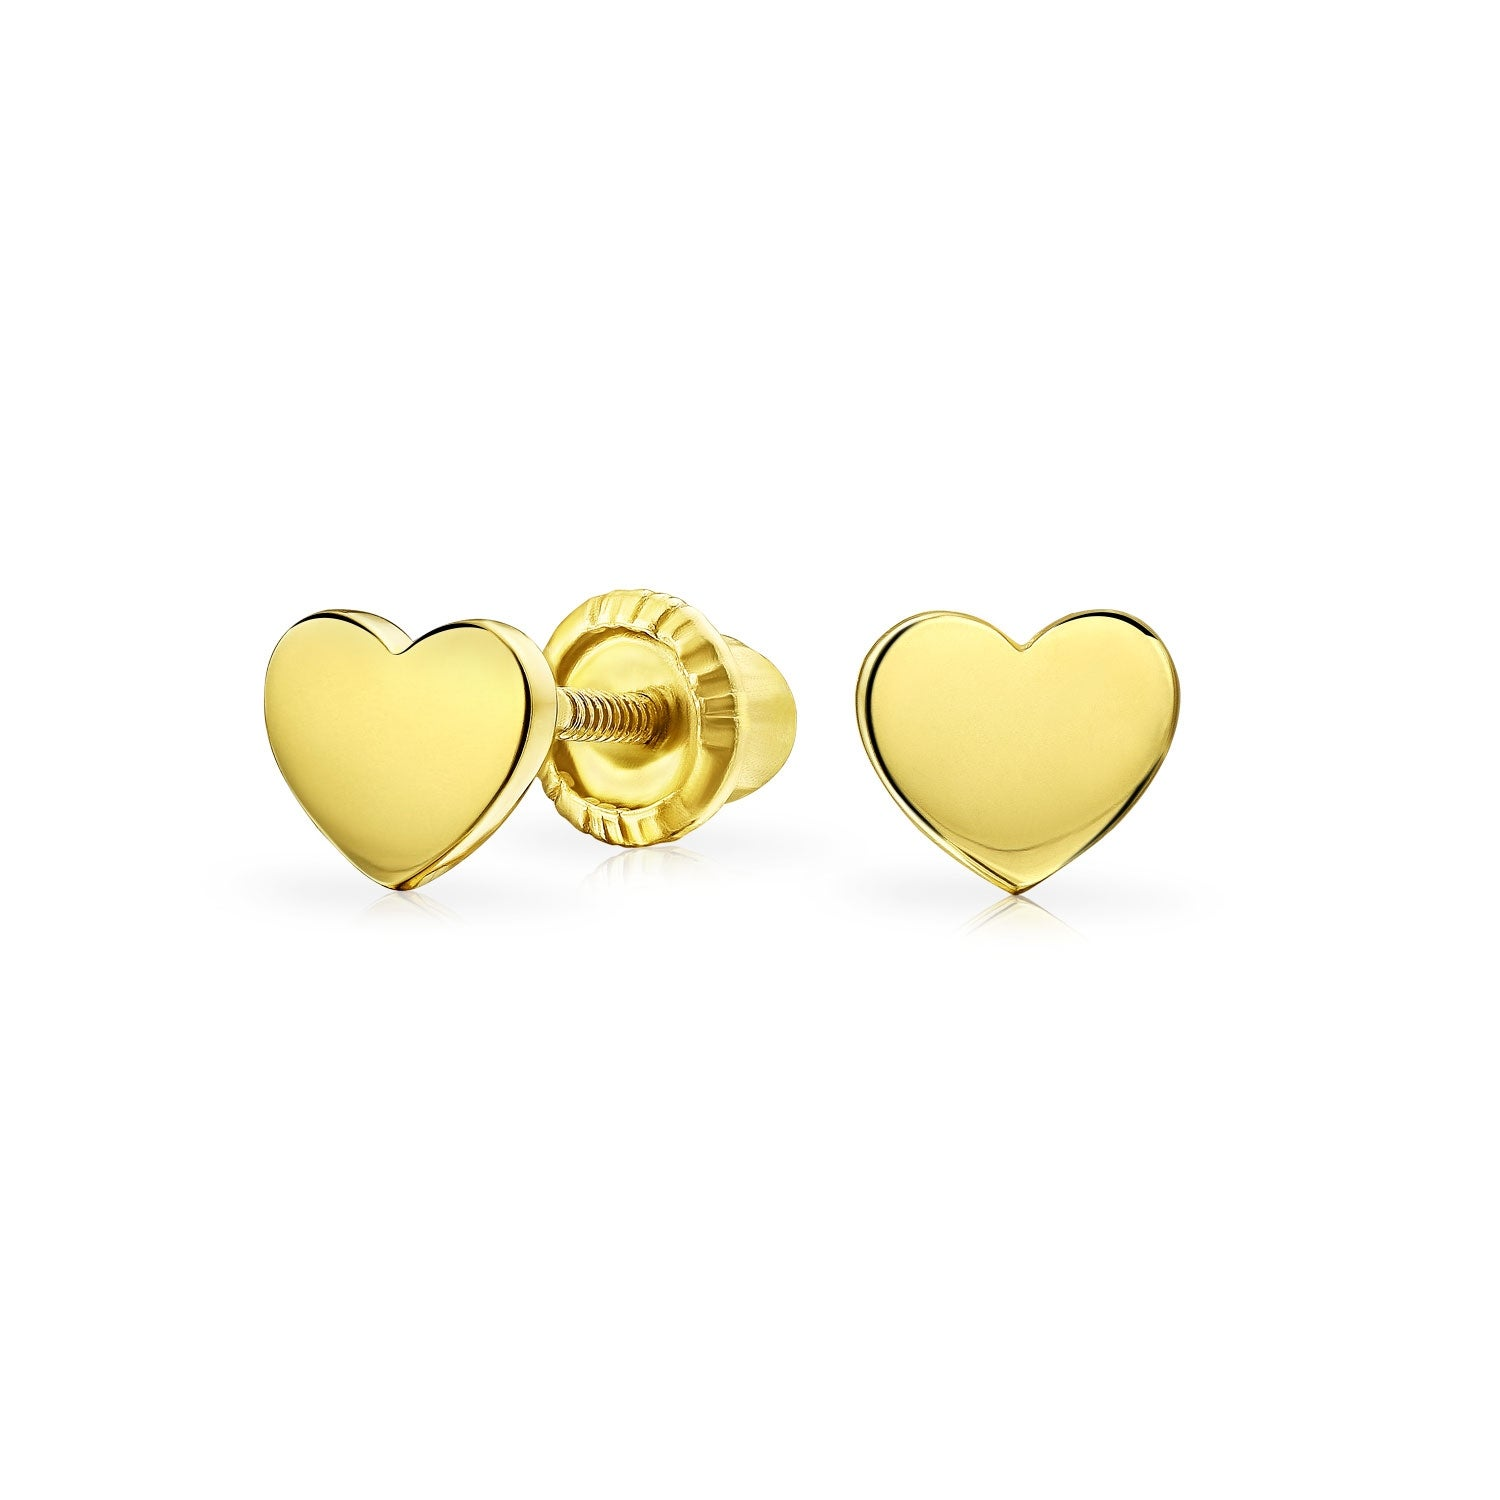 b6a8639c3 Shop Tiny Minimalist Heart Shaped Stud Earrings For Women For Teen For  Girlfriend Real 14K Yellow Gold Screwback - On Sale - Free Shipping On  Orders Over ...